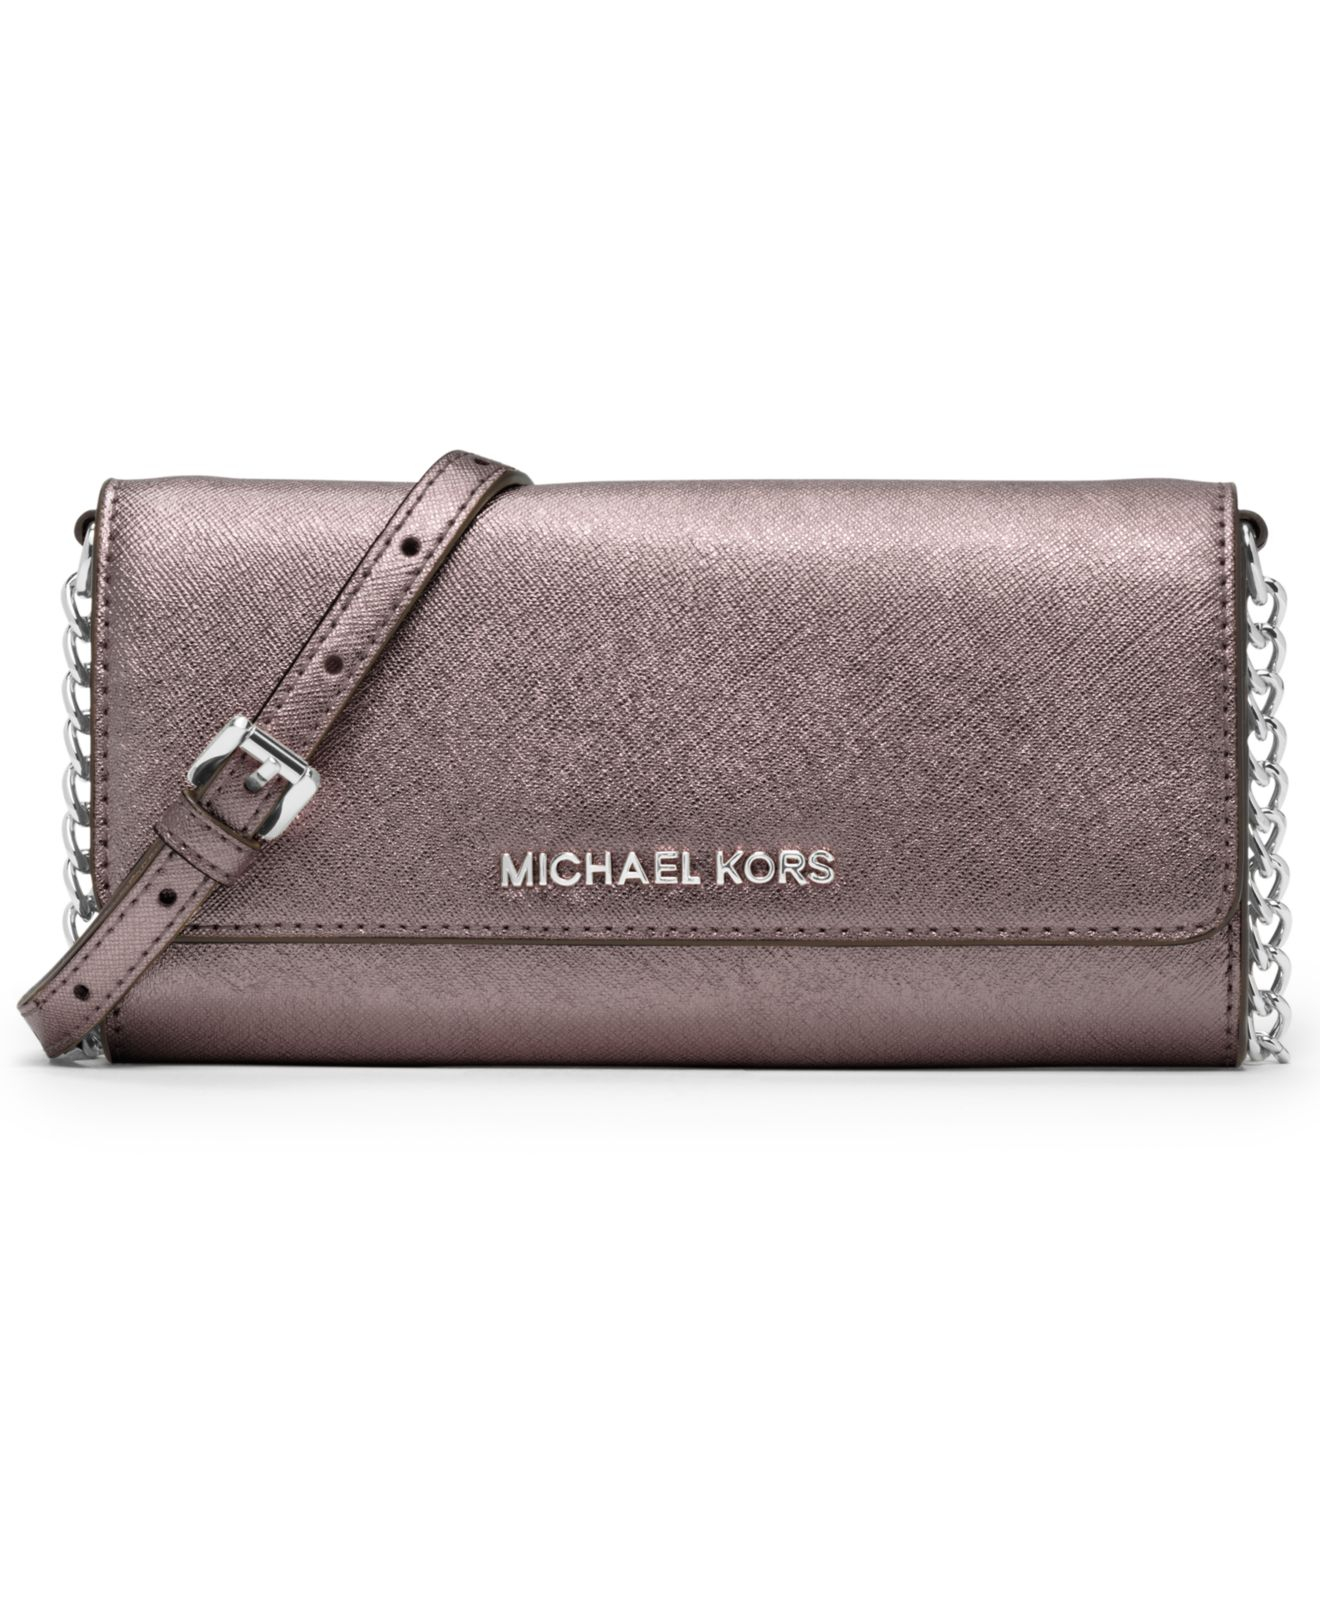 ff6585a3c7c9 Jet Set Wallet On A Chain Michael Kors | Stanford Center for ...